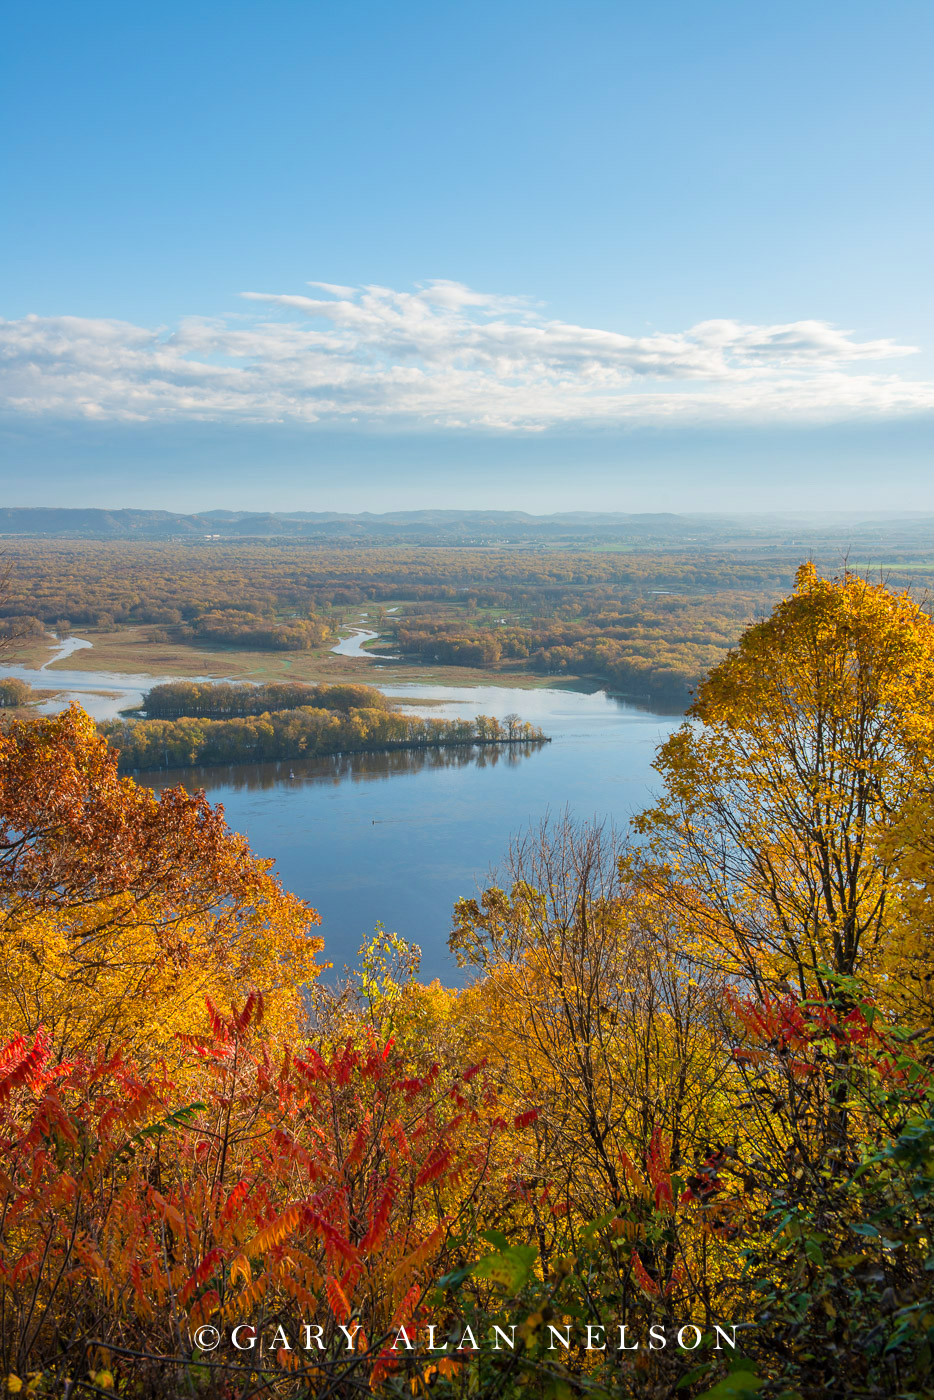 The Mississippi River from a bluff in the driftless area, Great River Bluffs State Park, Minnesota